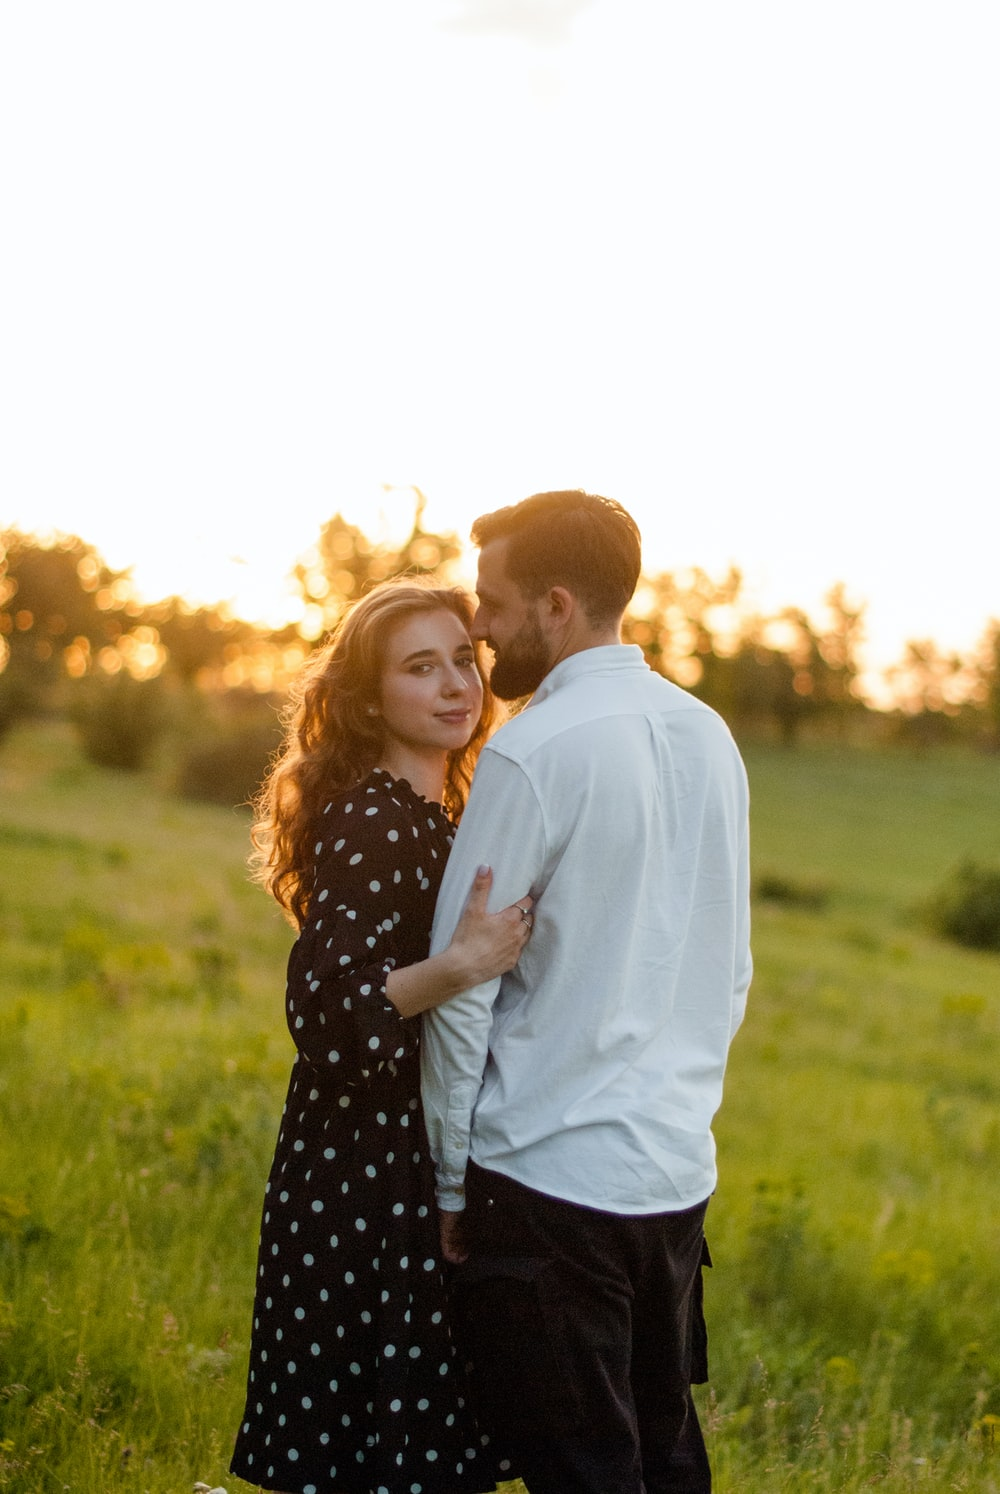 man in white dress shirt and woman in black and white polka dot dress